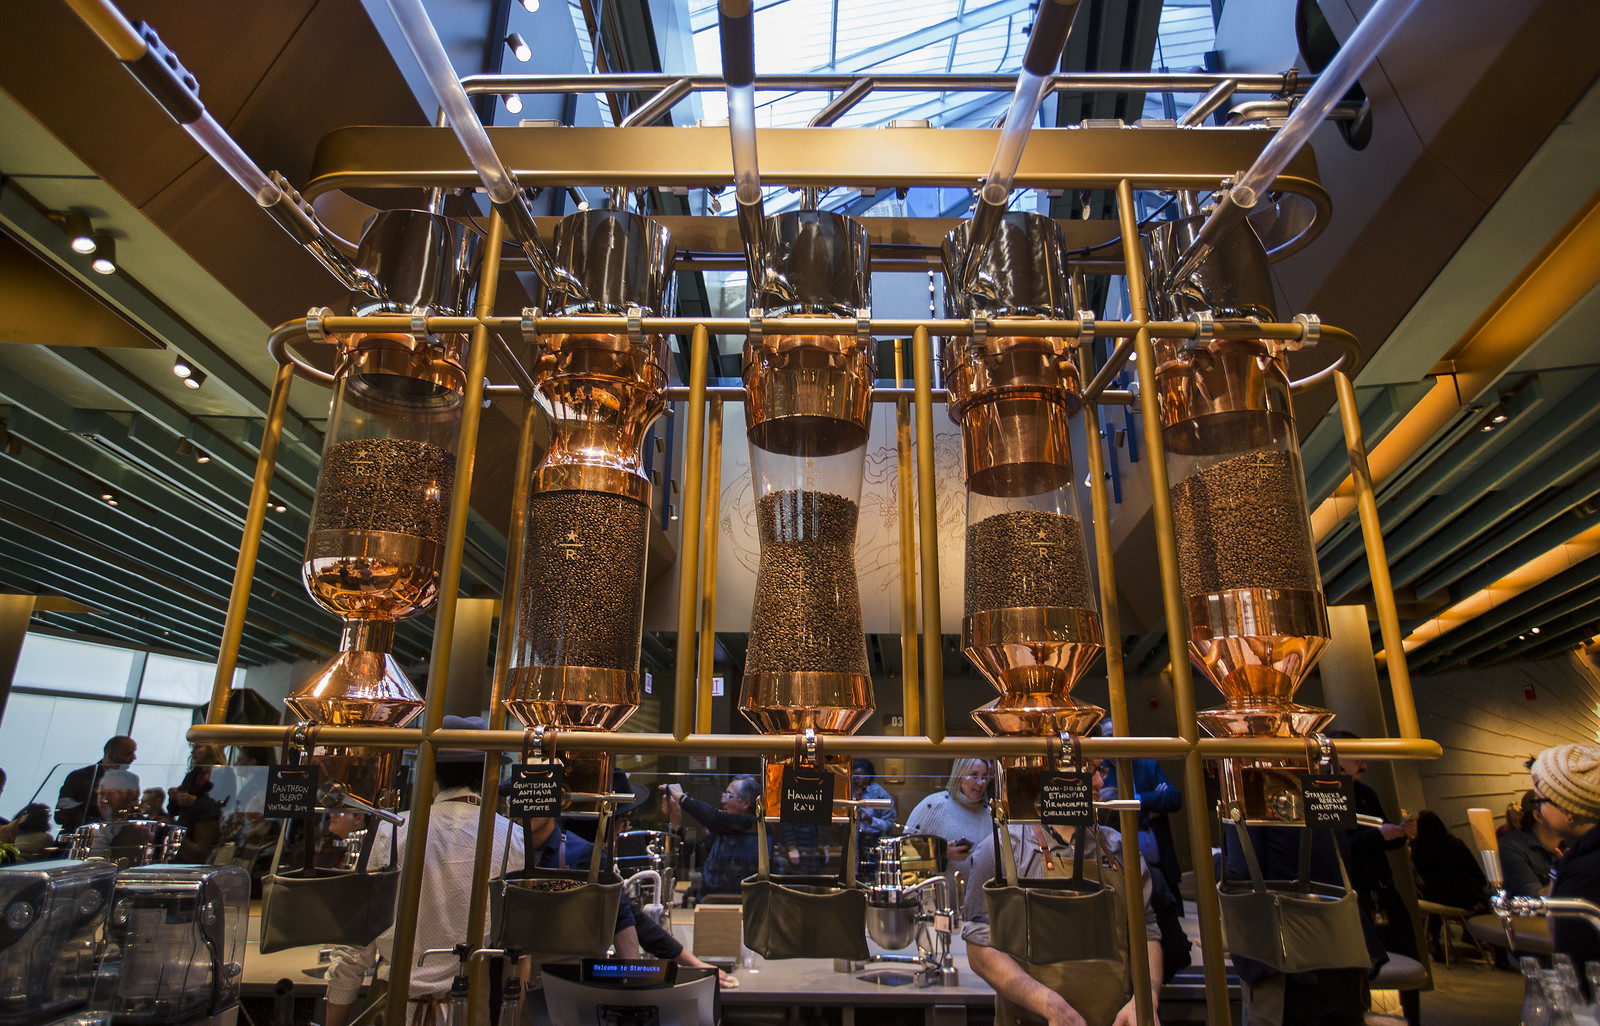 The World's Largest Starbucks Will Roast 200,000 Pounds of Coffee Annually